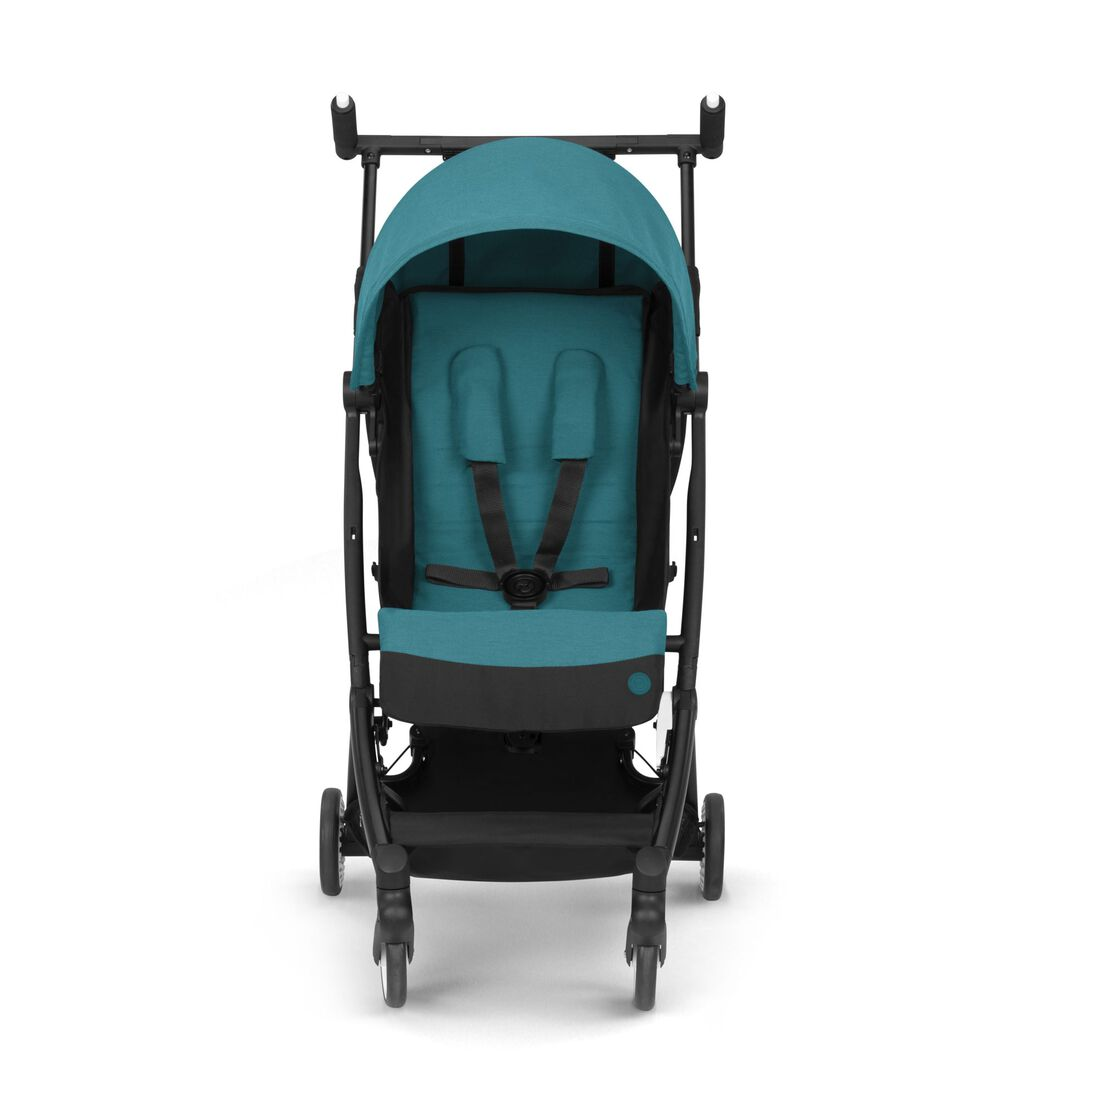 CYBEX Libelle - River Blue in River Blue large Bild 2